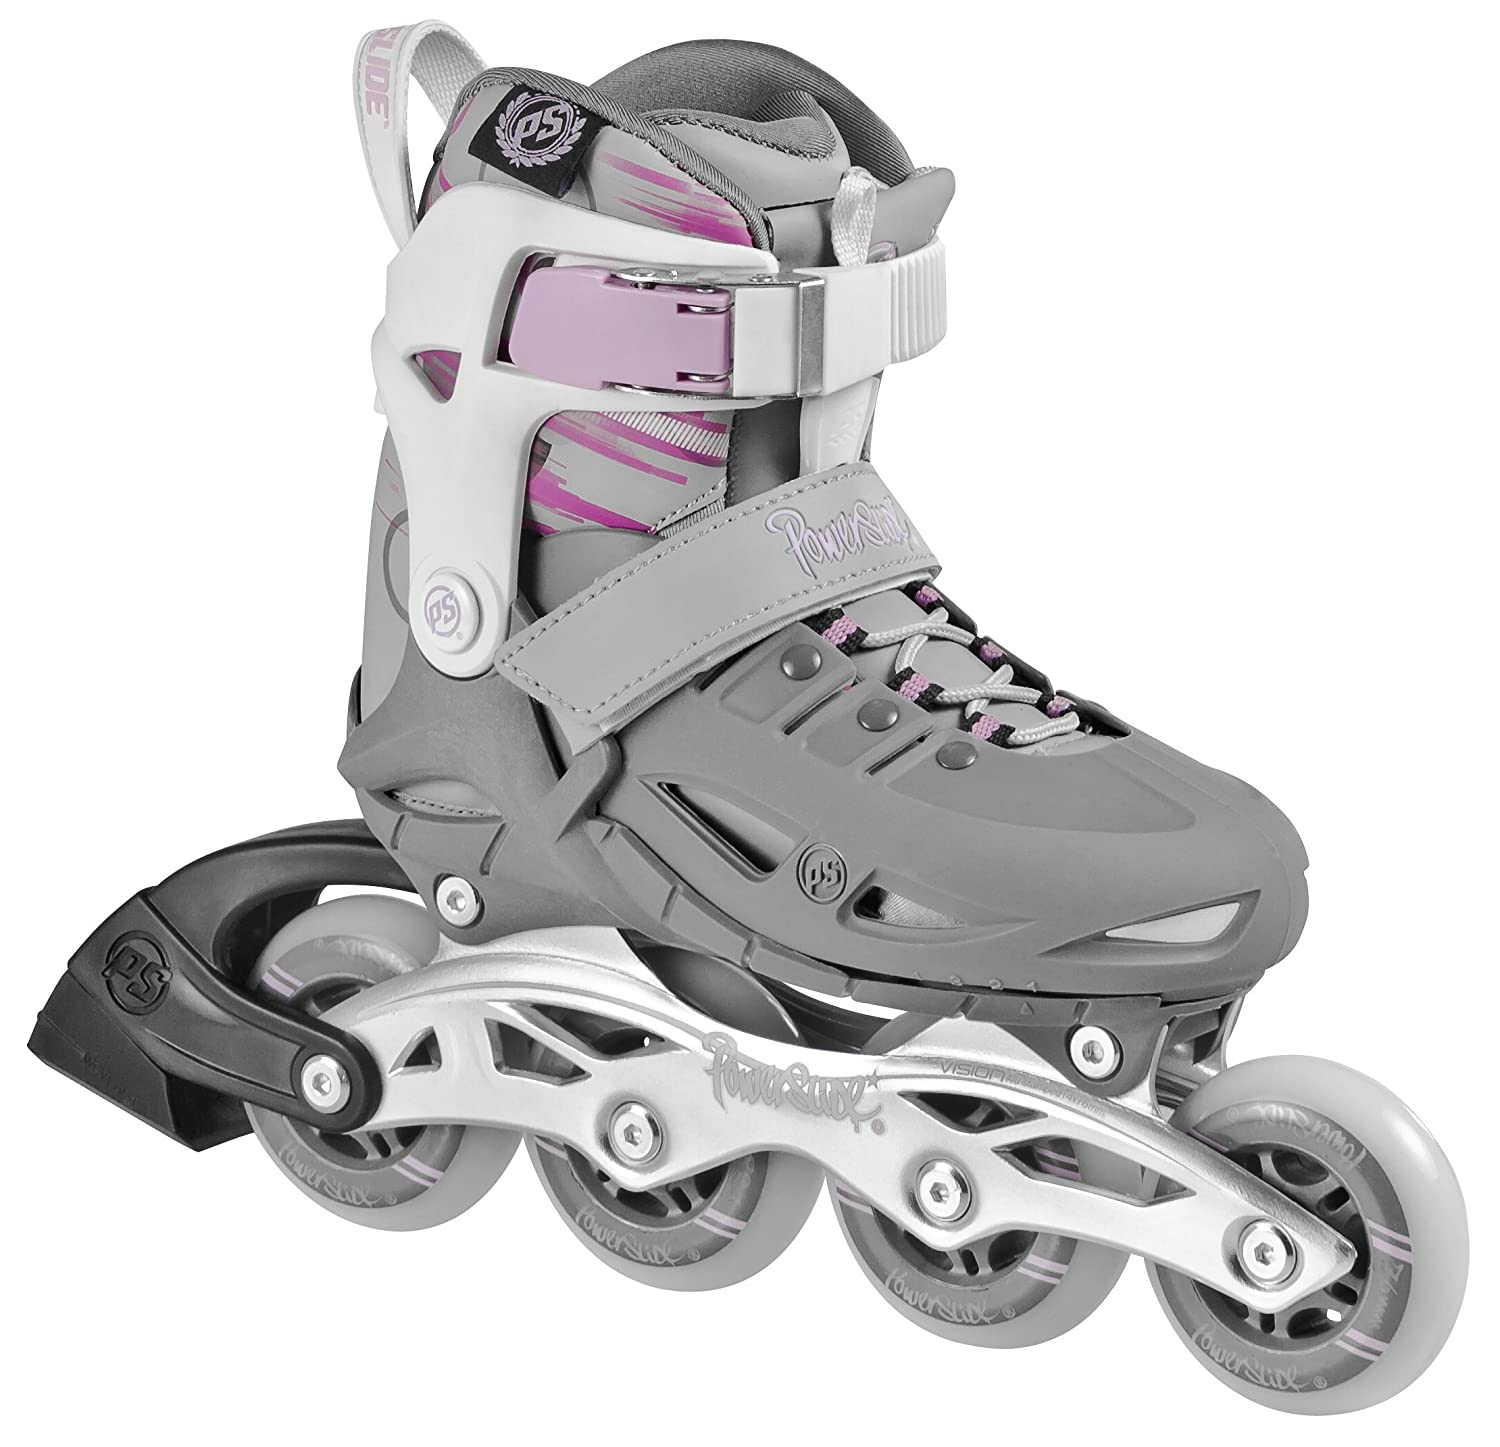 Powerslide Fitness Skates Phuzion Girls Patines línea color rosa talla